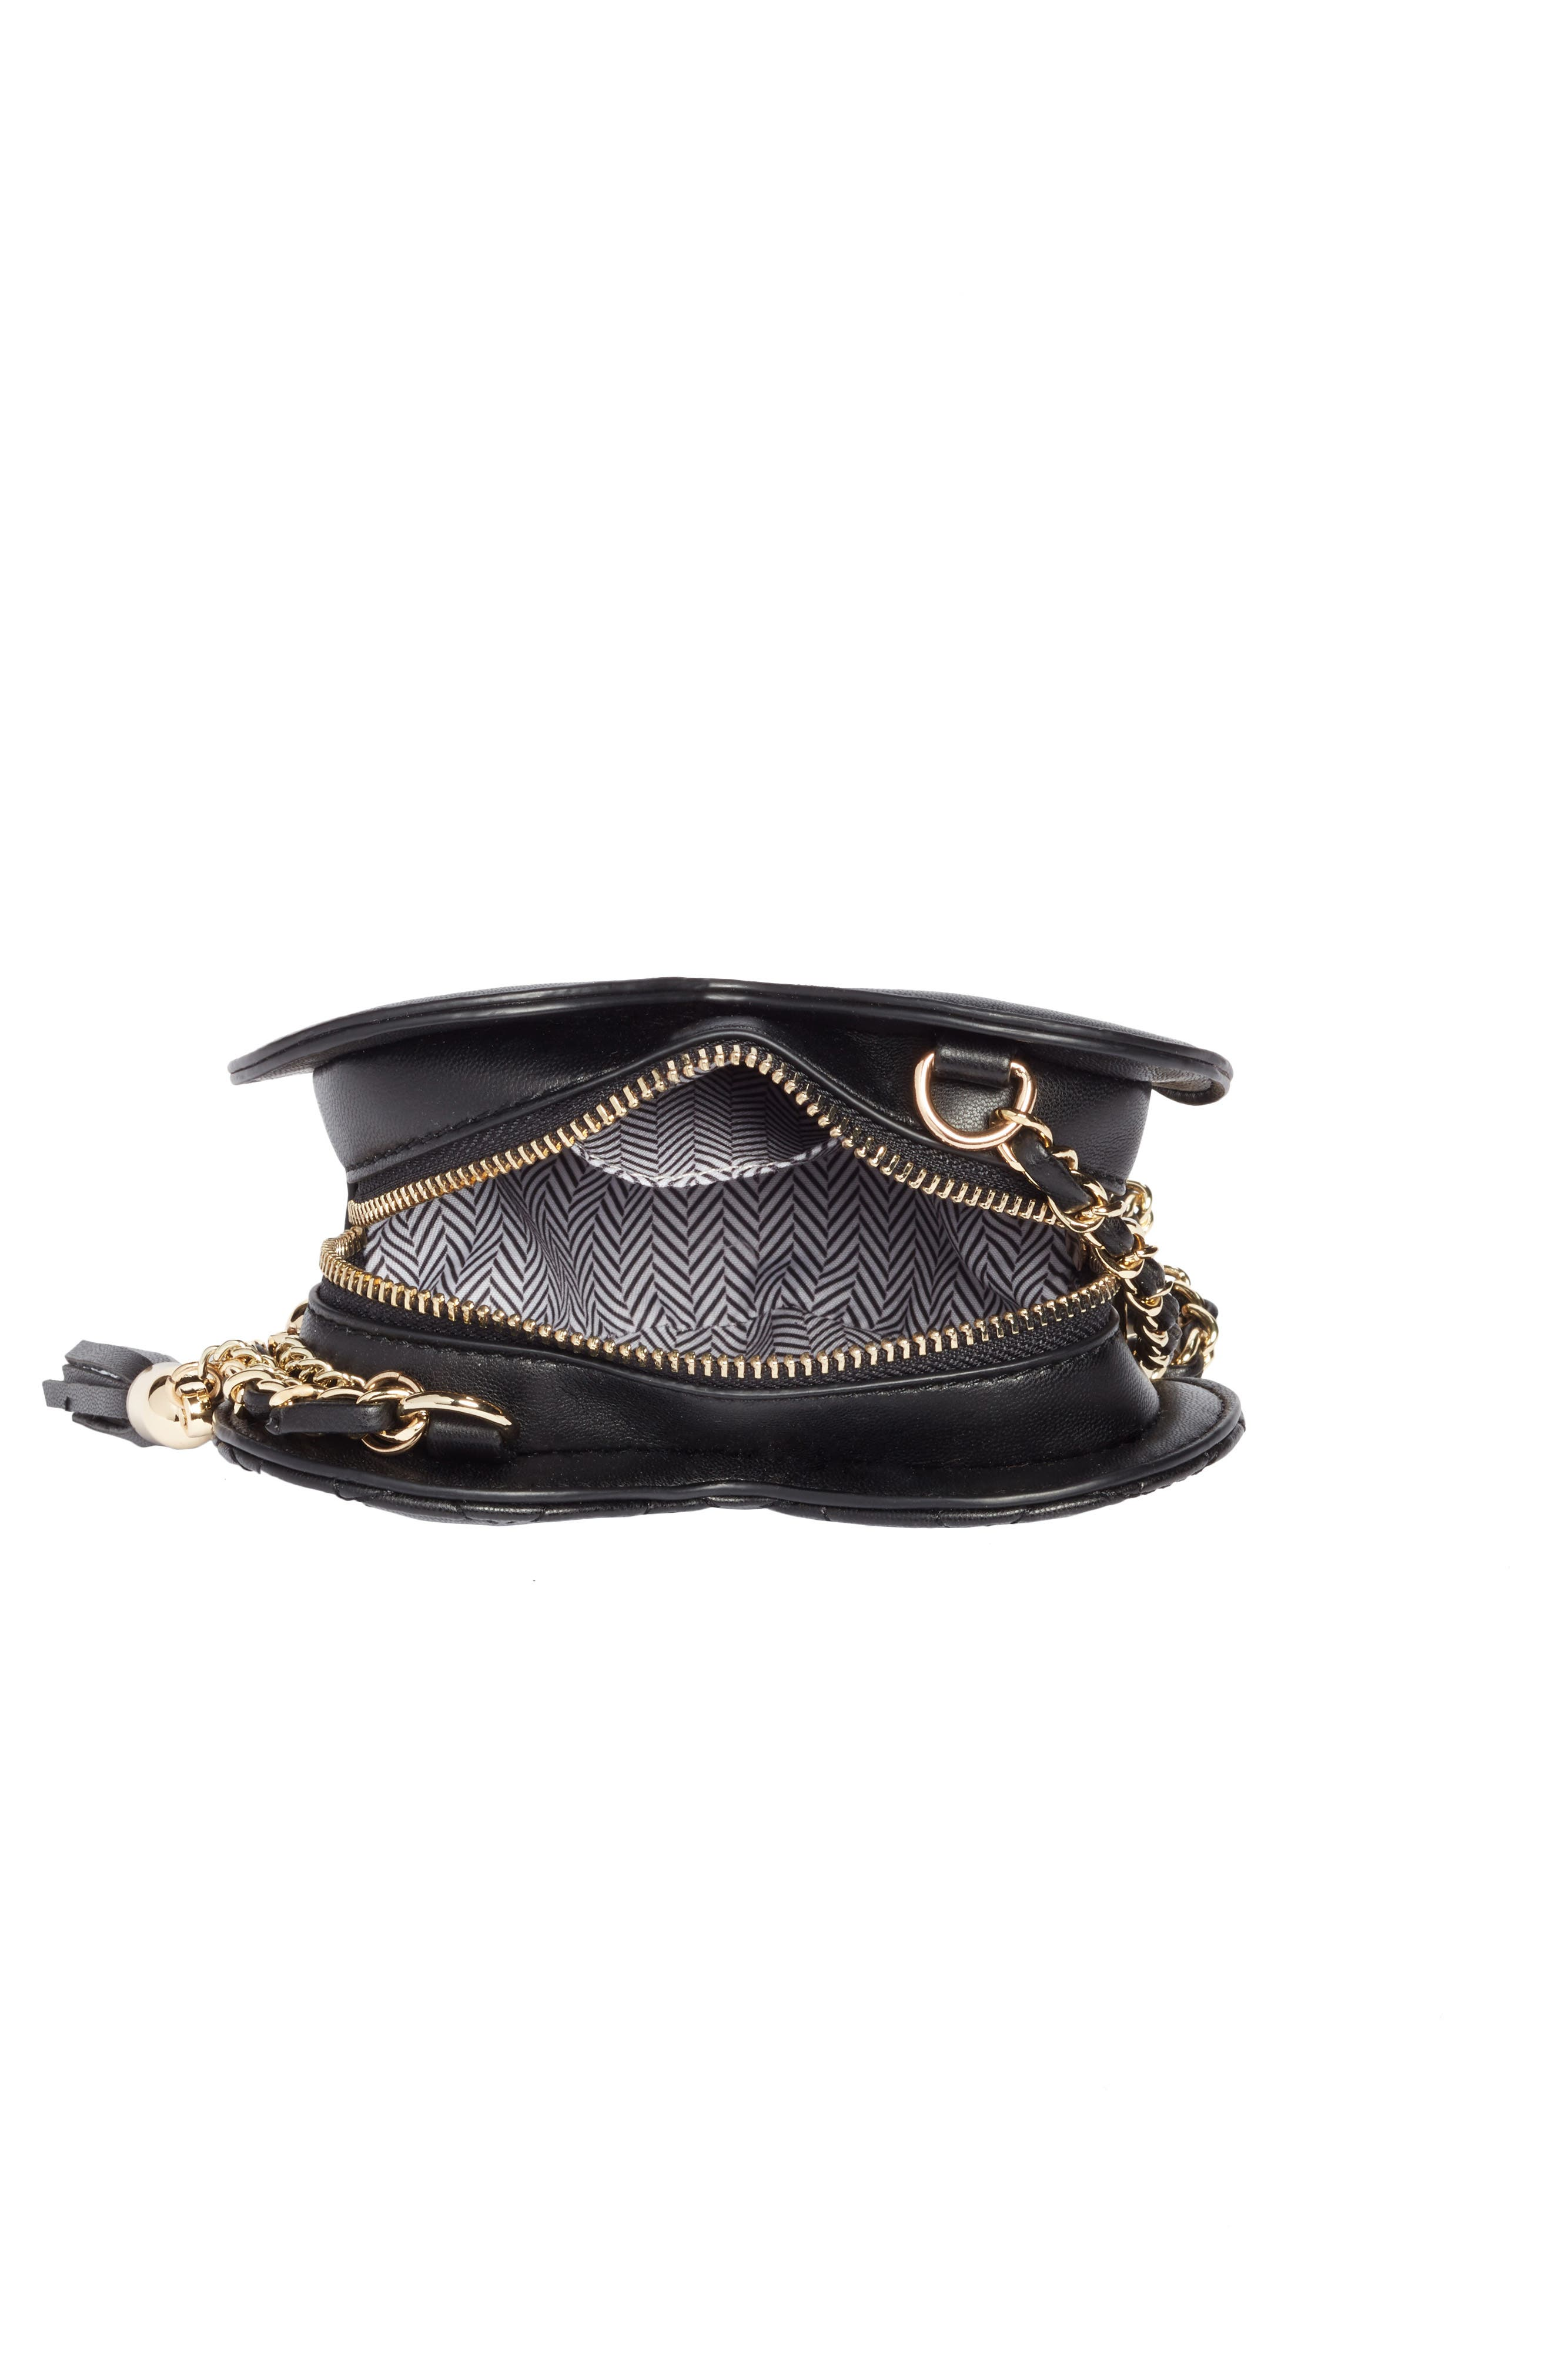 Mali + Lili Quilted Heart Vegan Leather Crossbody Bag,                             Alternate thumbnail 4, color,                             BLACK